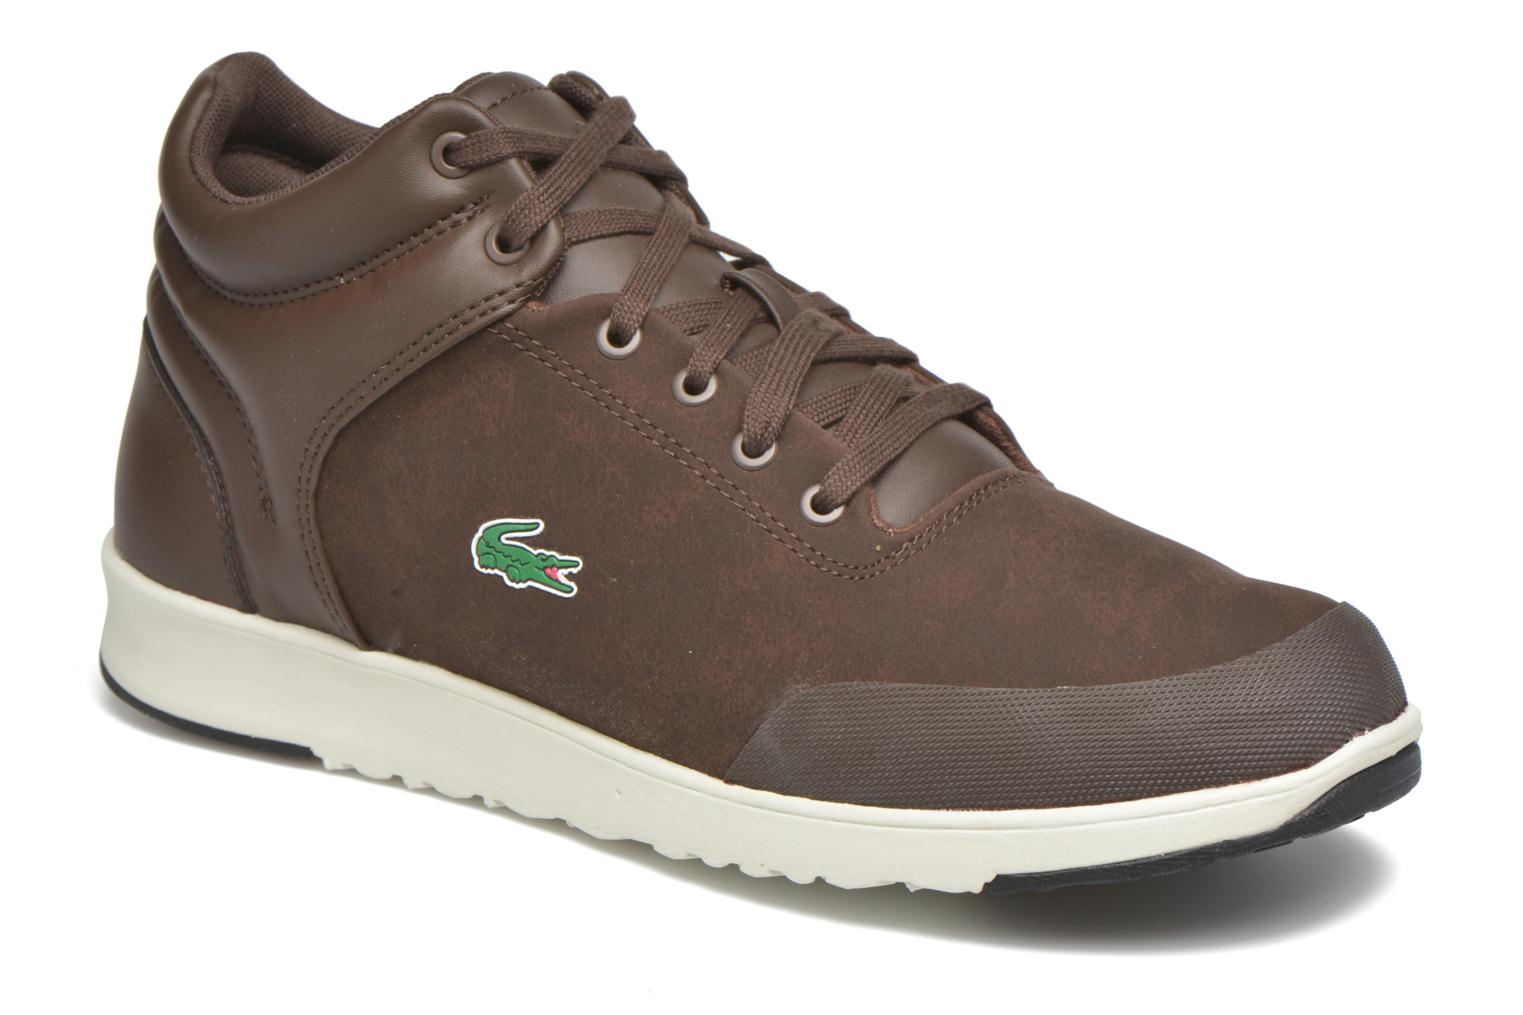 Baskets Lacoste Tarru-Light 416 1 Gris vue détail/paire